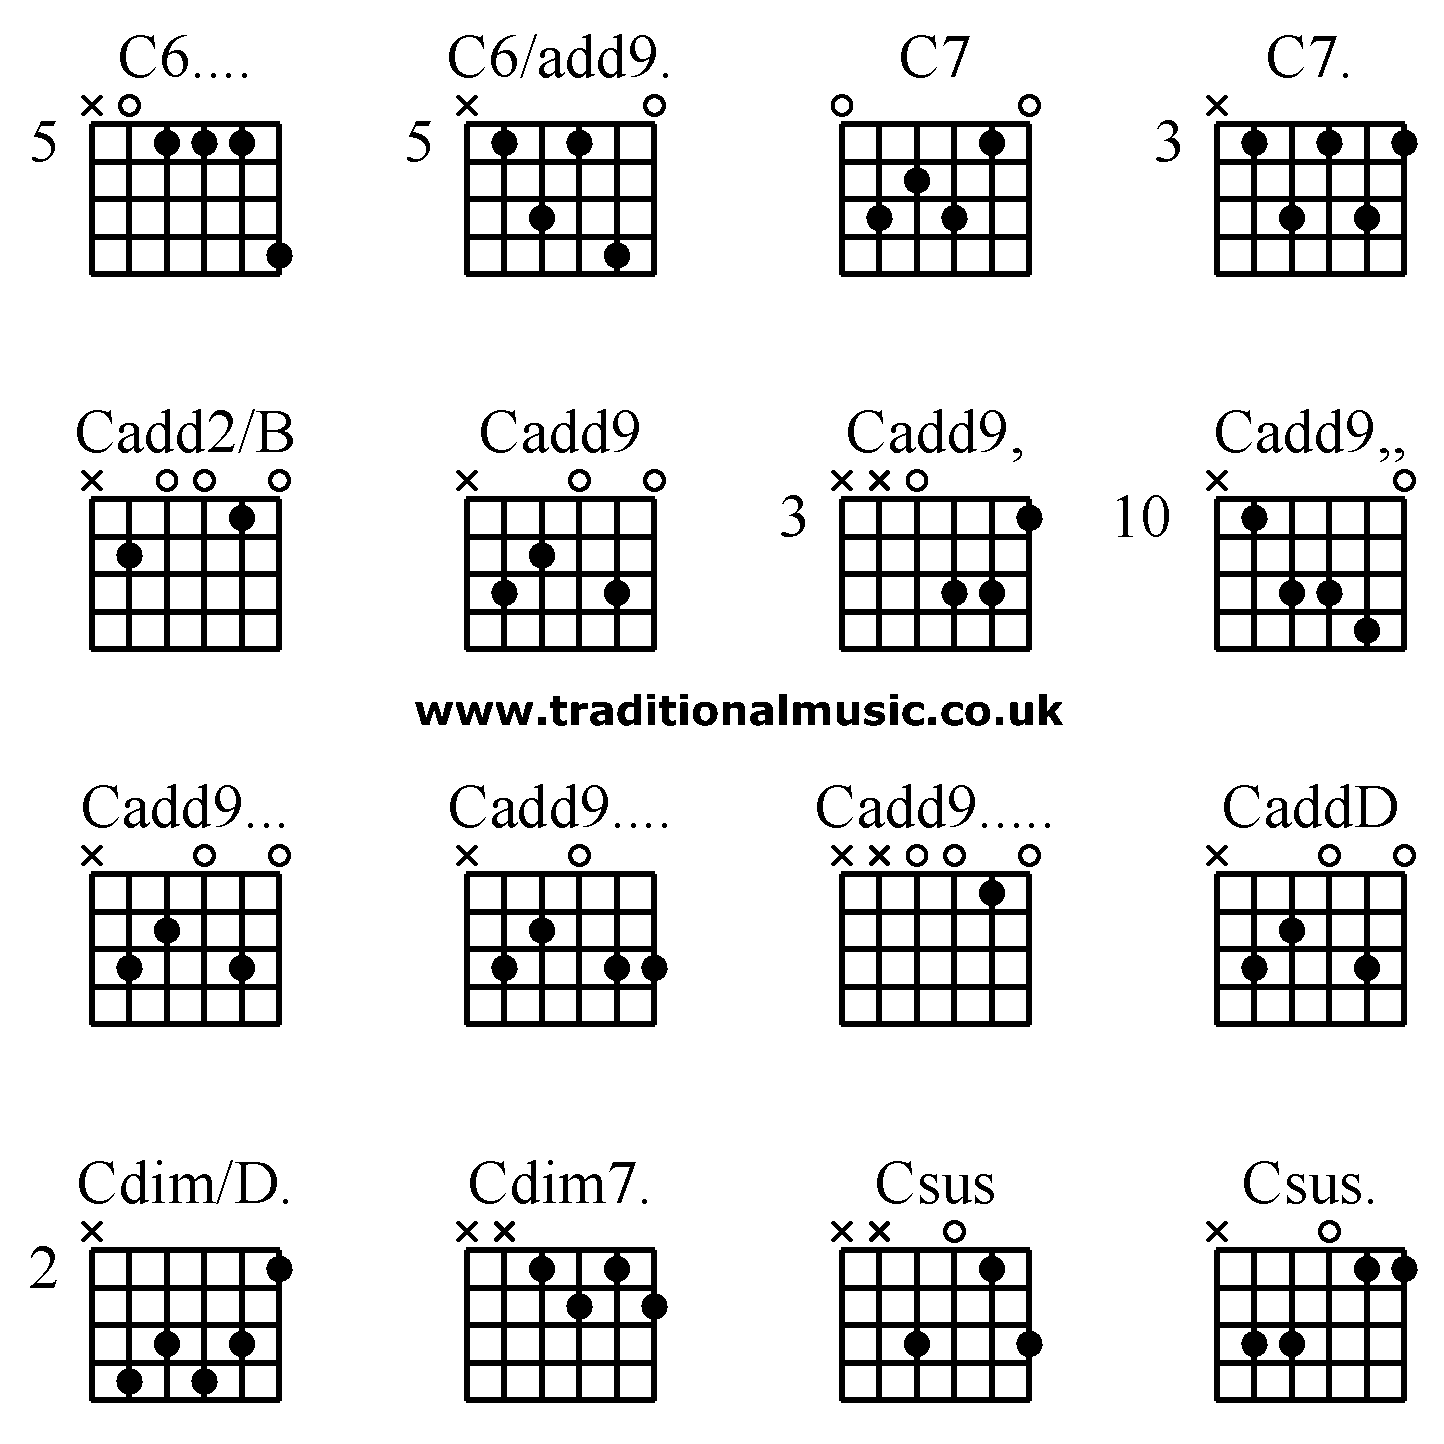 Advanced guitar chords g g g g ga gb gc gc ge advanced chord chart and fingering diagram for guitar hexwebz Choice Image